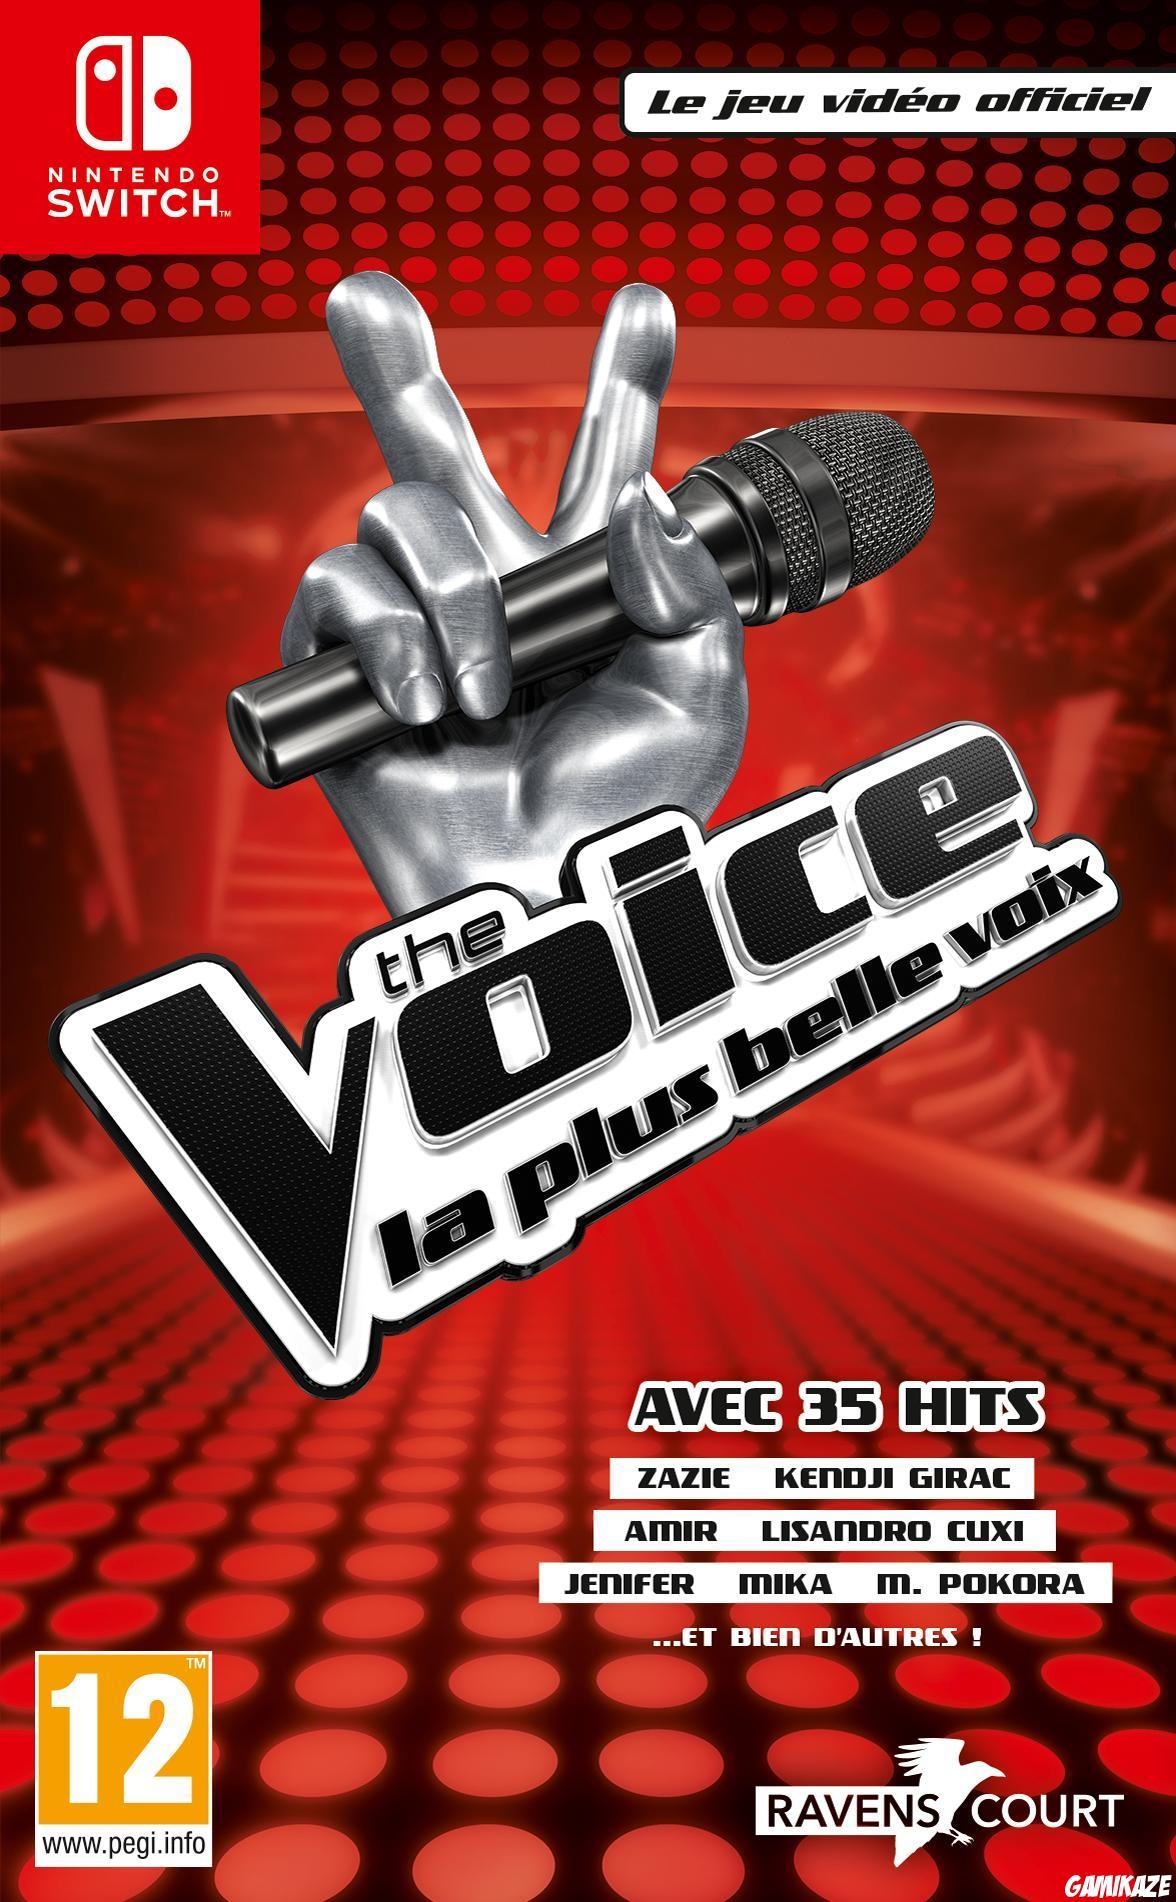 cover The Voice : La plus belle voix - Le jeu vidéo officiel switch